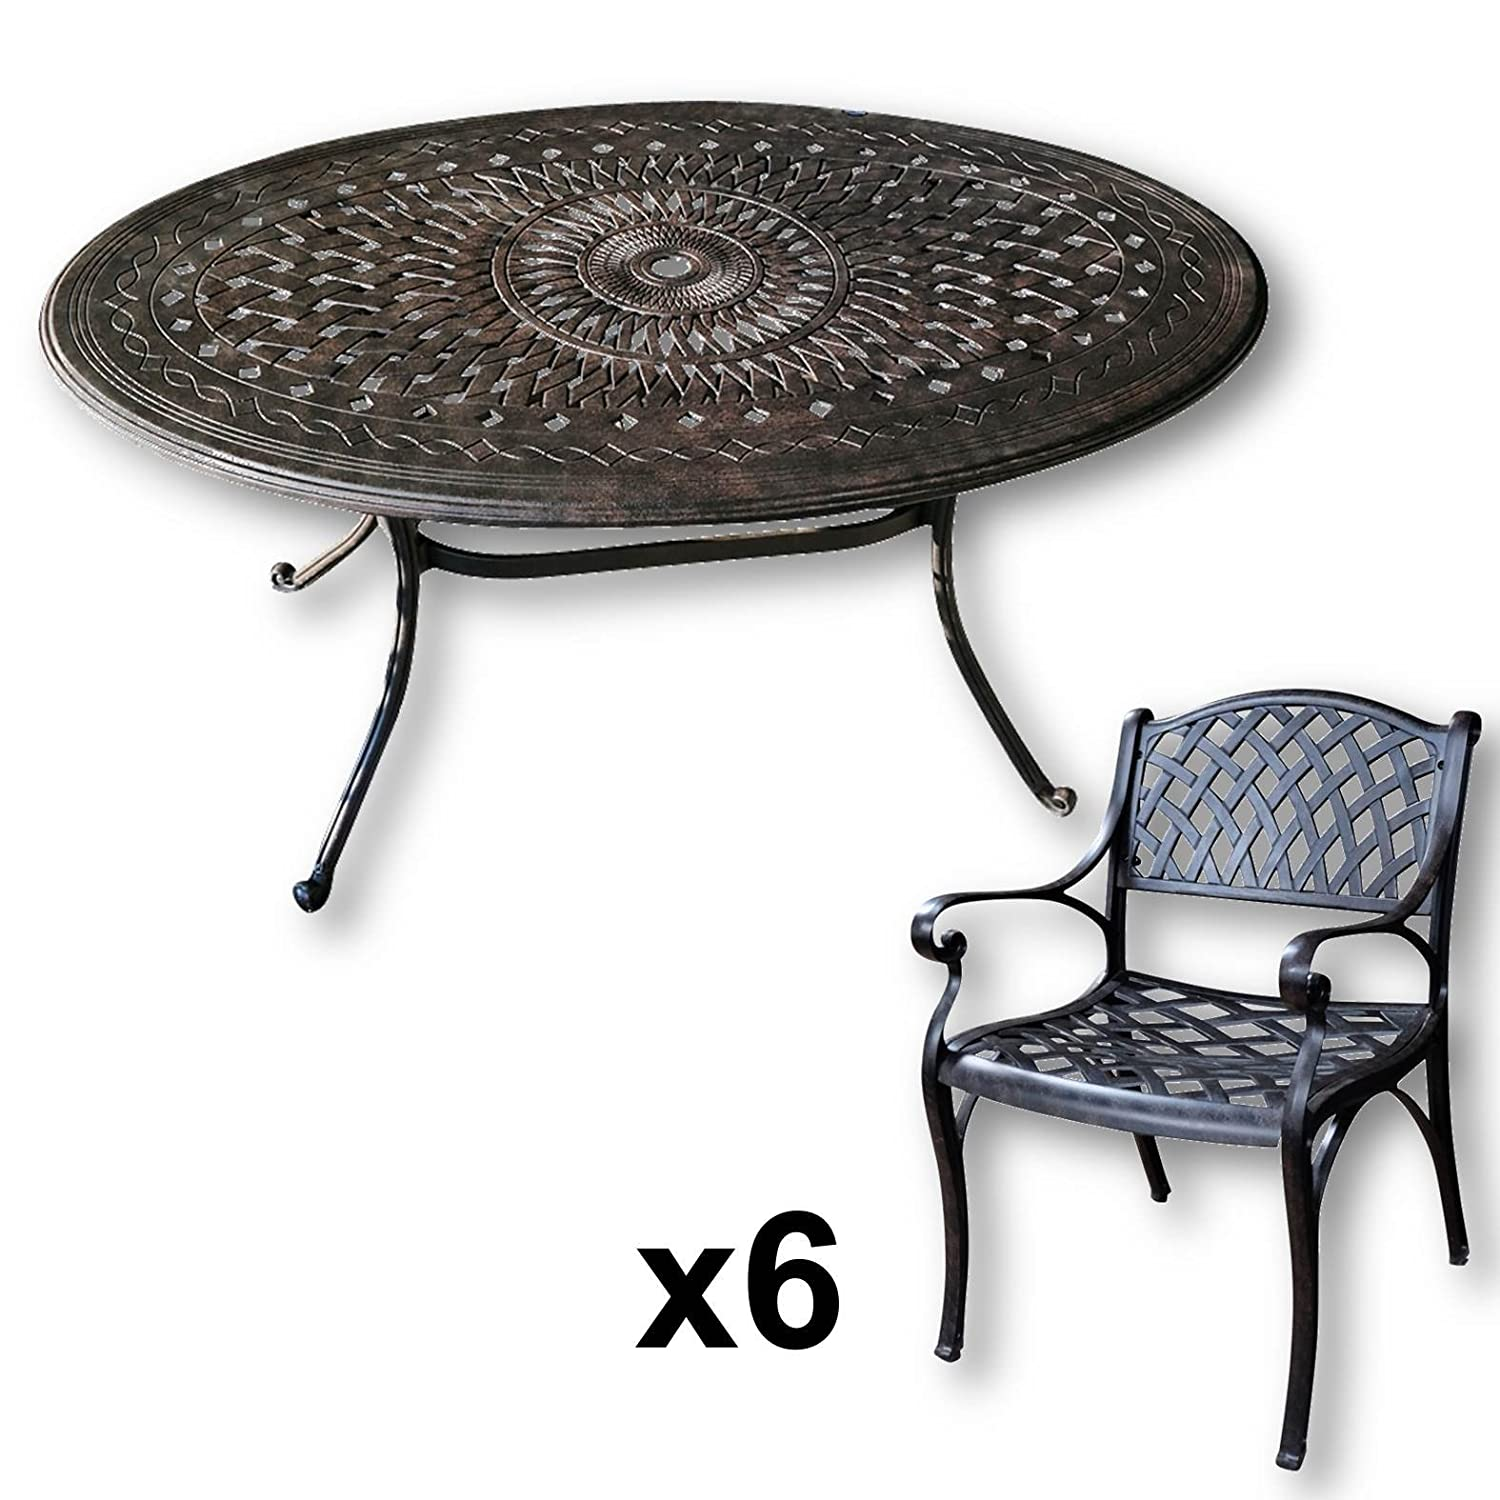 lazy susan emily 150 x 95 cm ovaler gartentisch mit 6 st hlen gartenm bel set aus metall. Black Bedroom Furniture Sets. Home Design Ideas